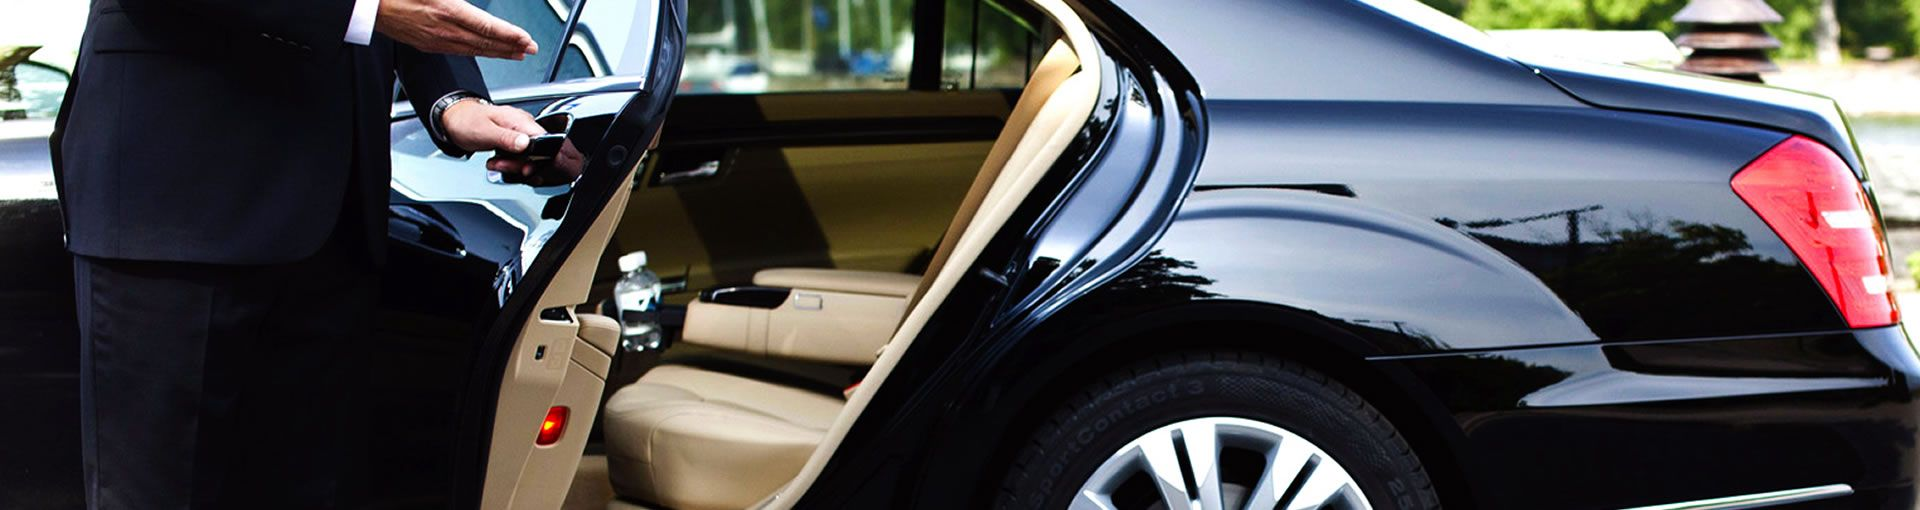 Luxury Transportation Exquisite New York's Limos